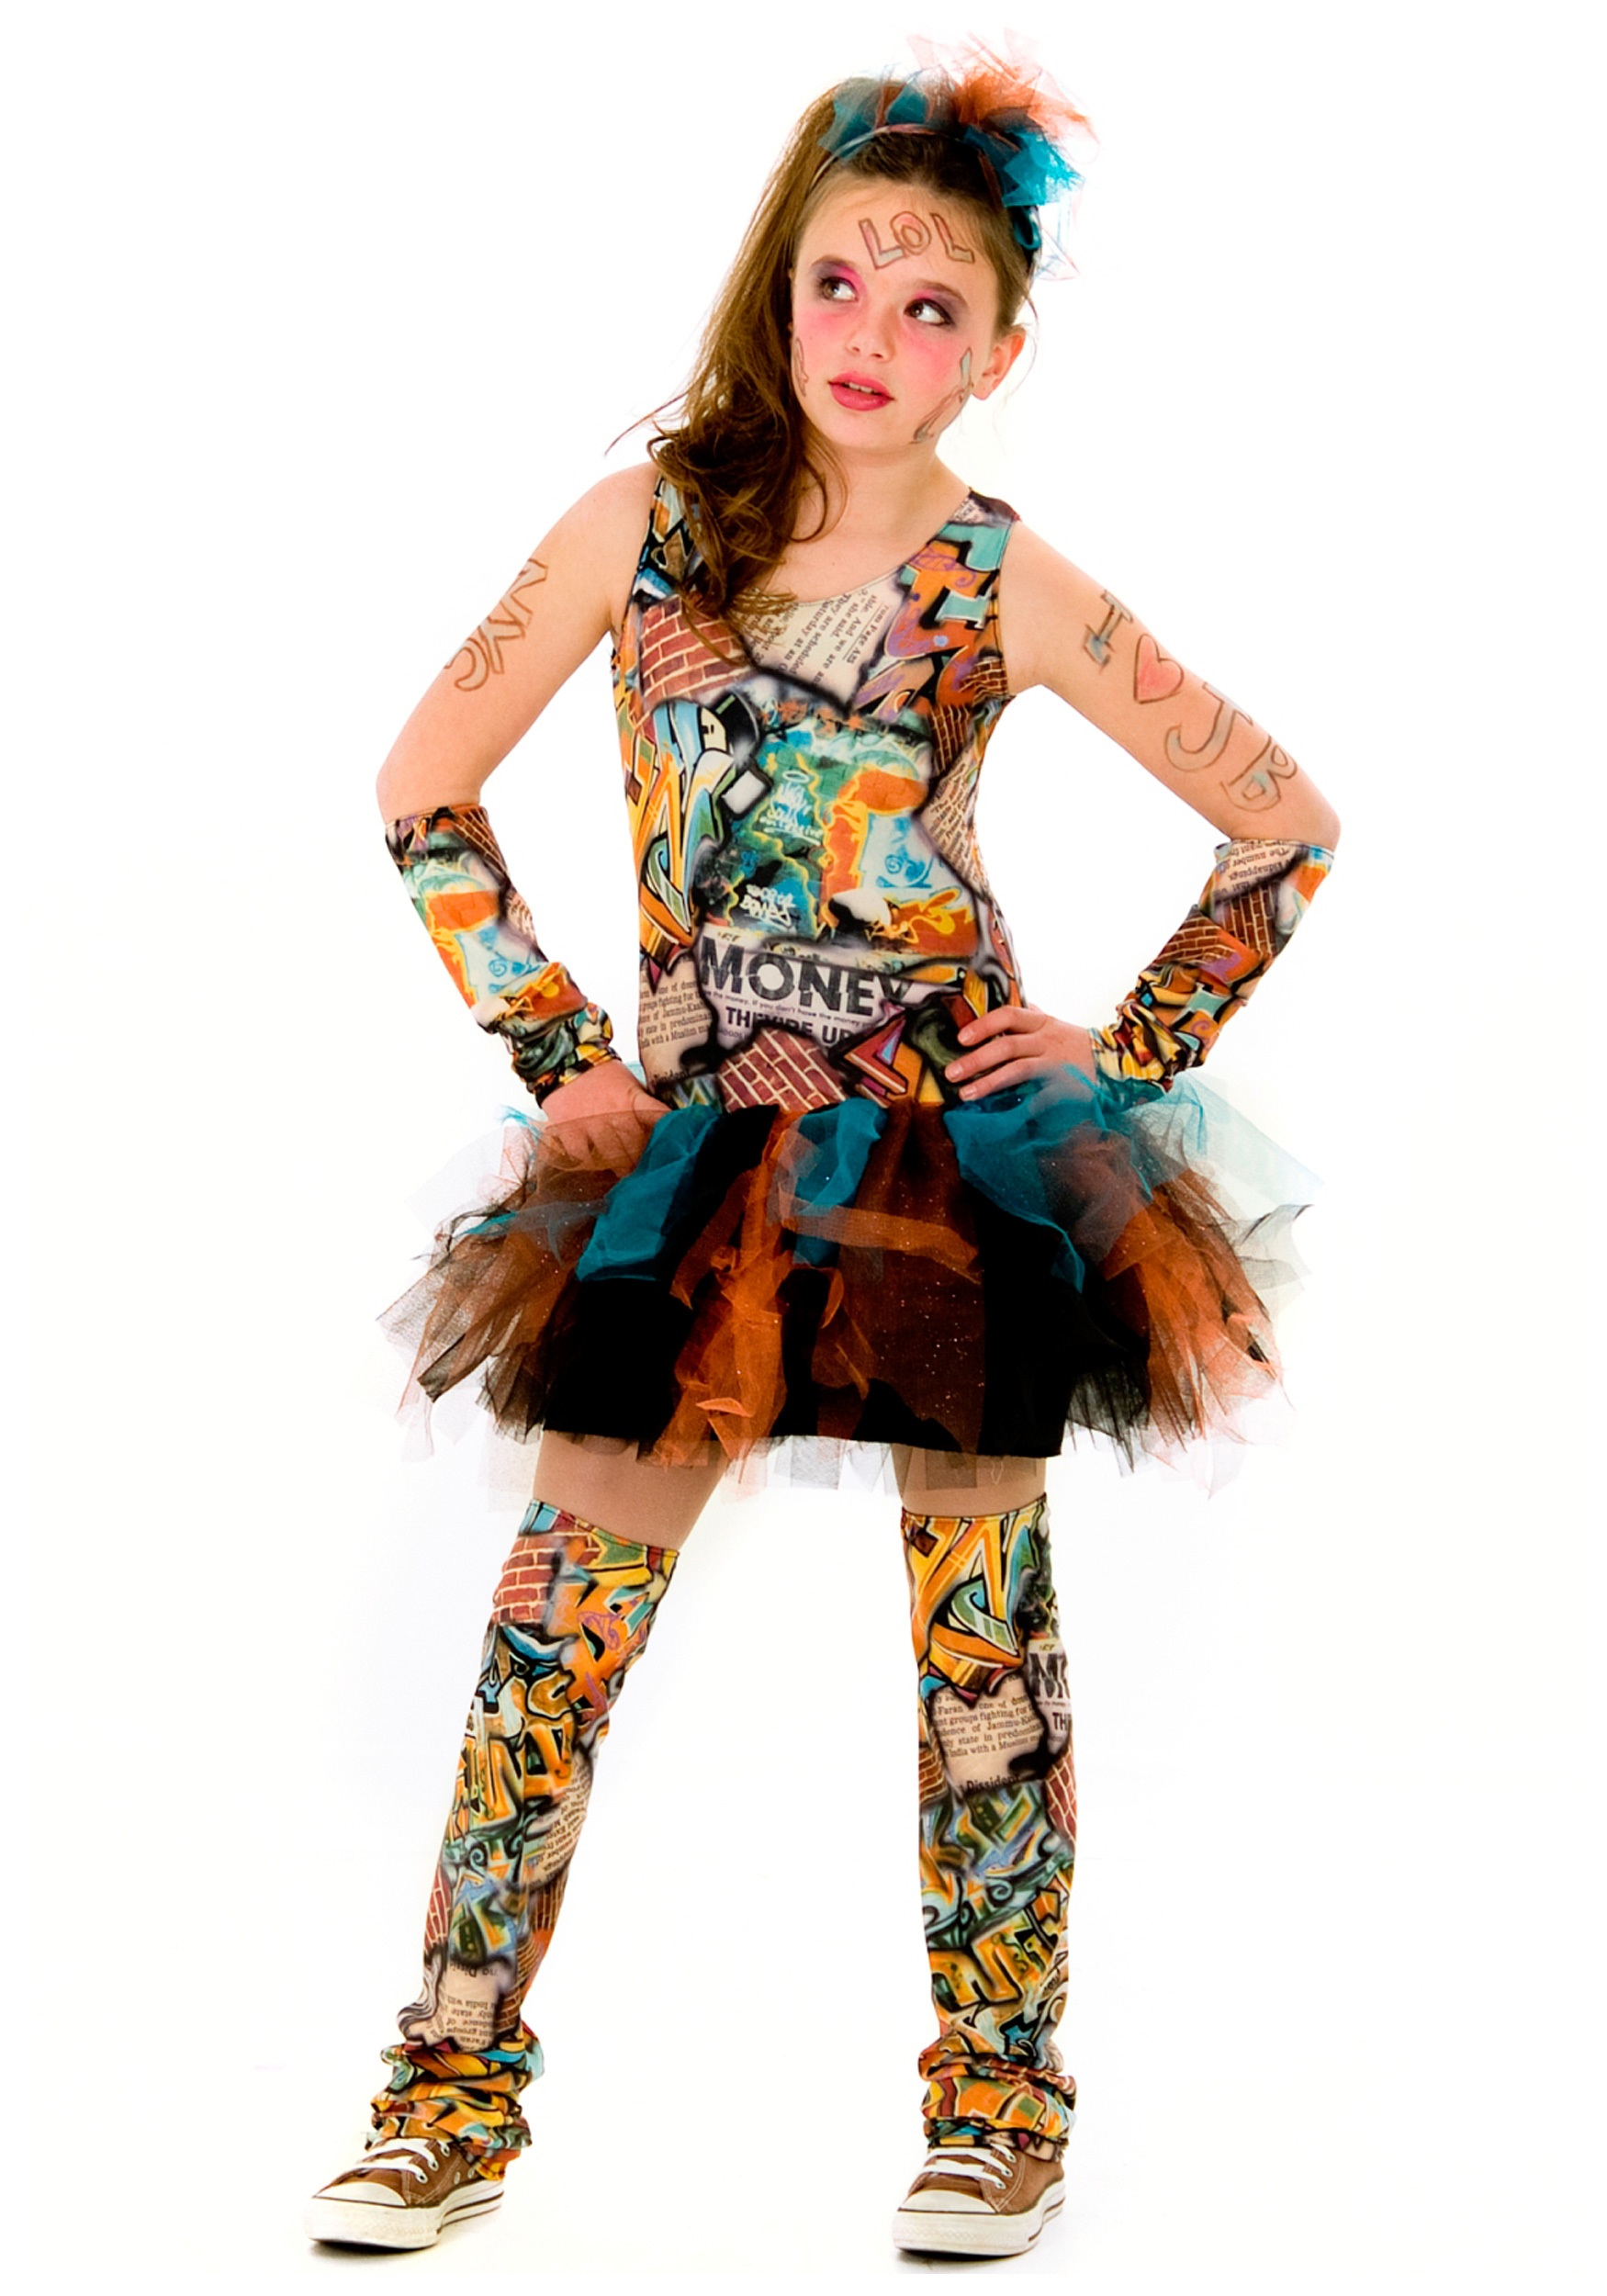 Tween Graffiti Girl Costume - Unique and Colorful Teen Costumes